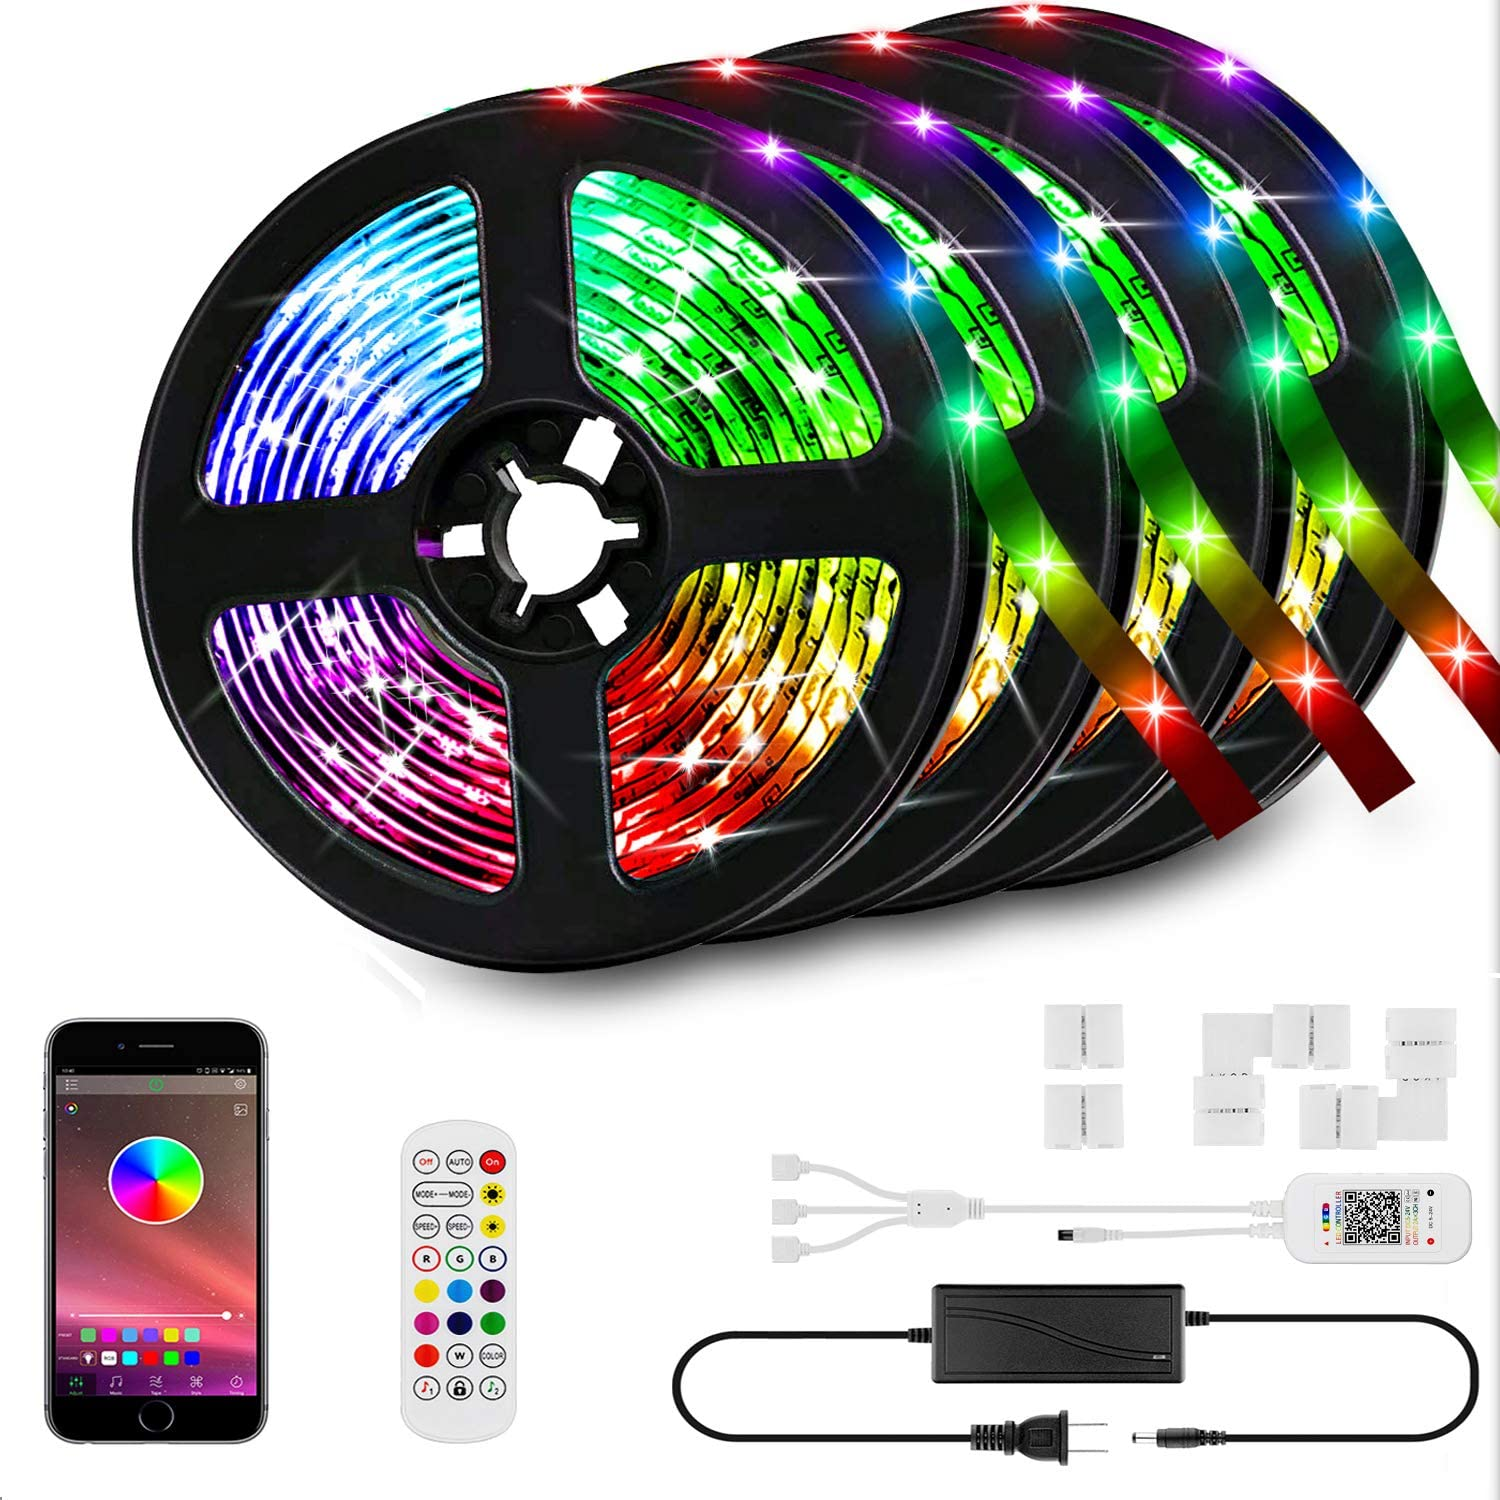 66ft/20M LED Strip Lights Kit,LED Tape Strips,RGB LED Light Strips,Sync to Music,Smart App Strip Light,Bluetooth Controller,Light Strips for Room,Remote LED Lights for Bedroom Home Party